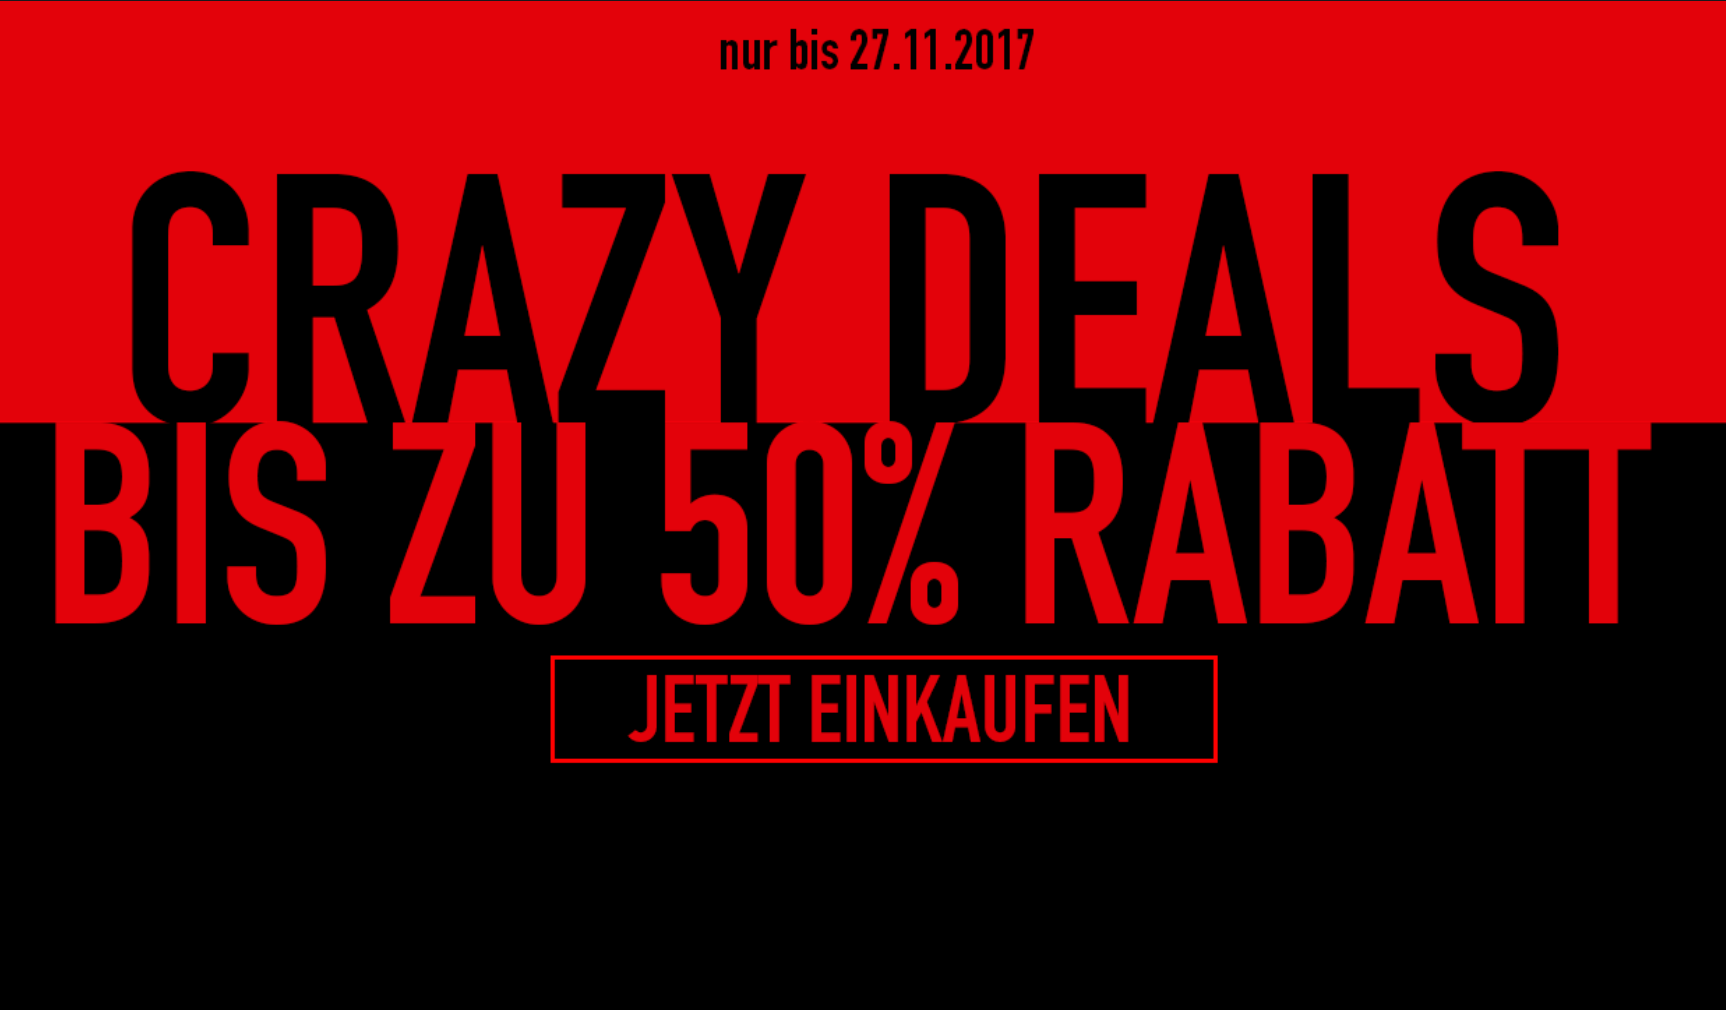 Black Friday Wann Crazy Deals Bei Odlo Bis Zu 50 Rabatt Black Friday